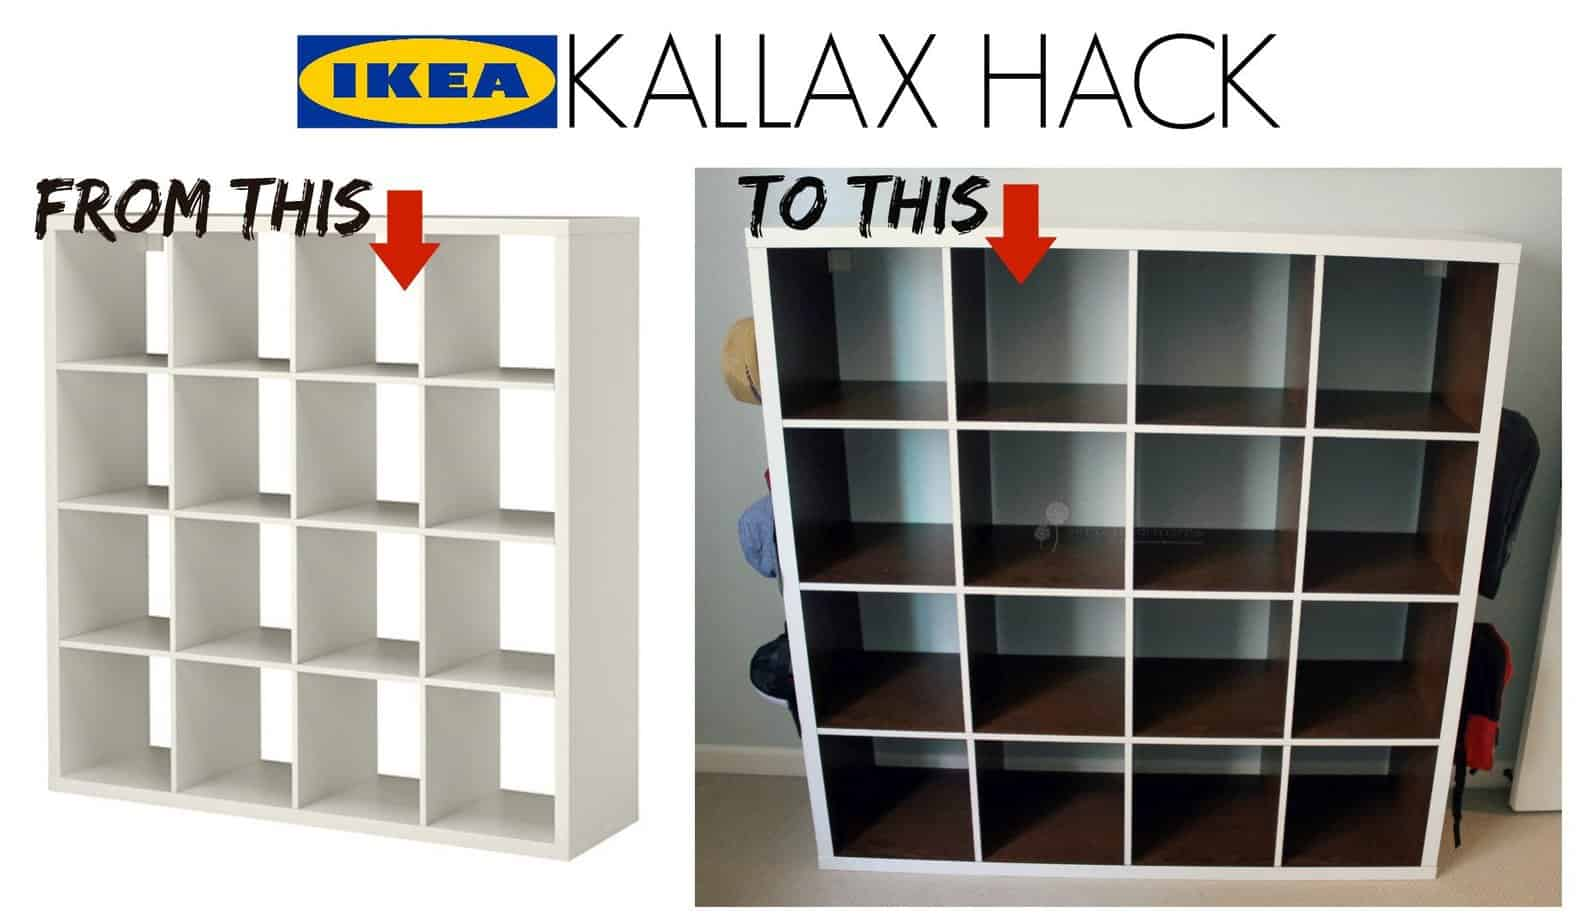 Ikea Kallax Hack Home Decors And Interior Design Ideas By  # Meuble Tv Kallax Ikea